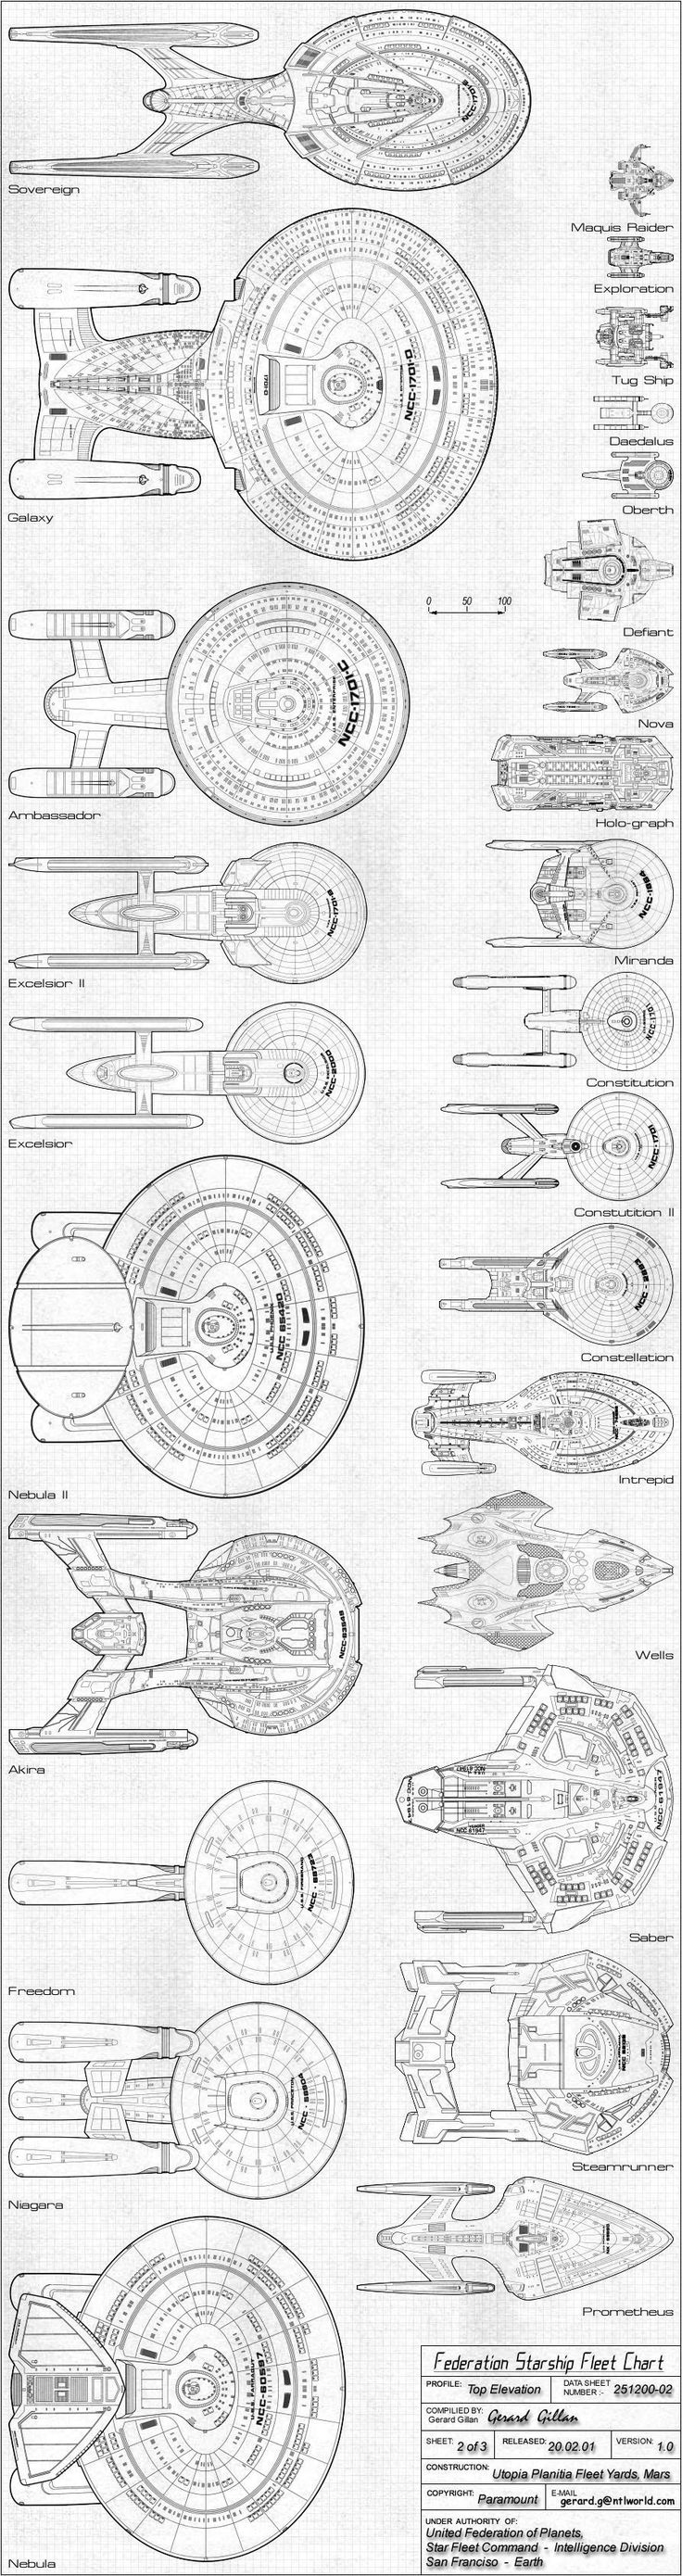 I've never been a huge Star Trek fan, but this is really cool!